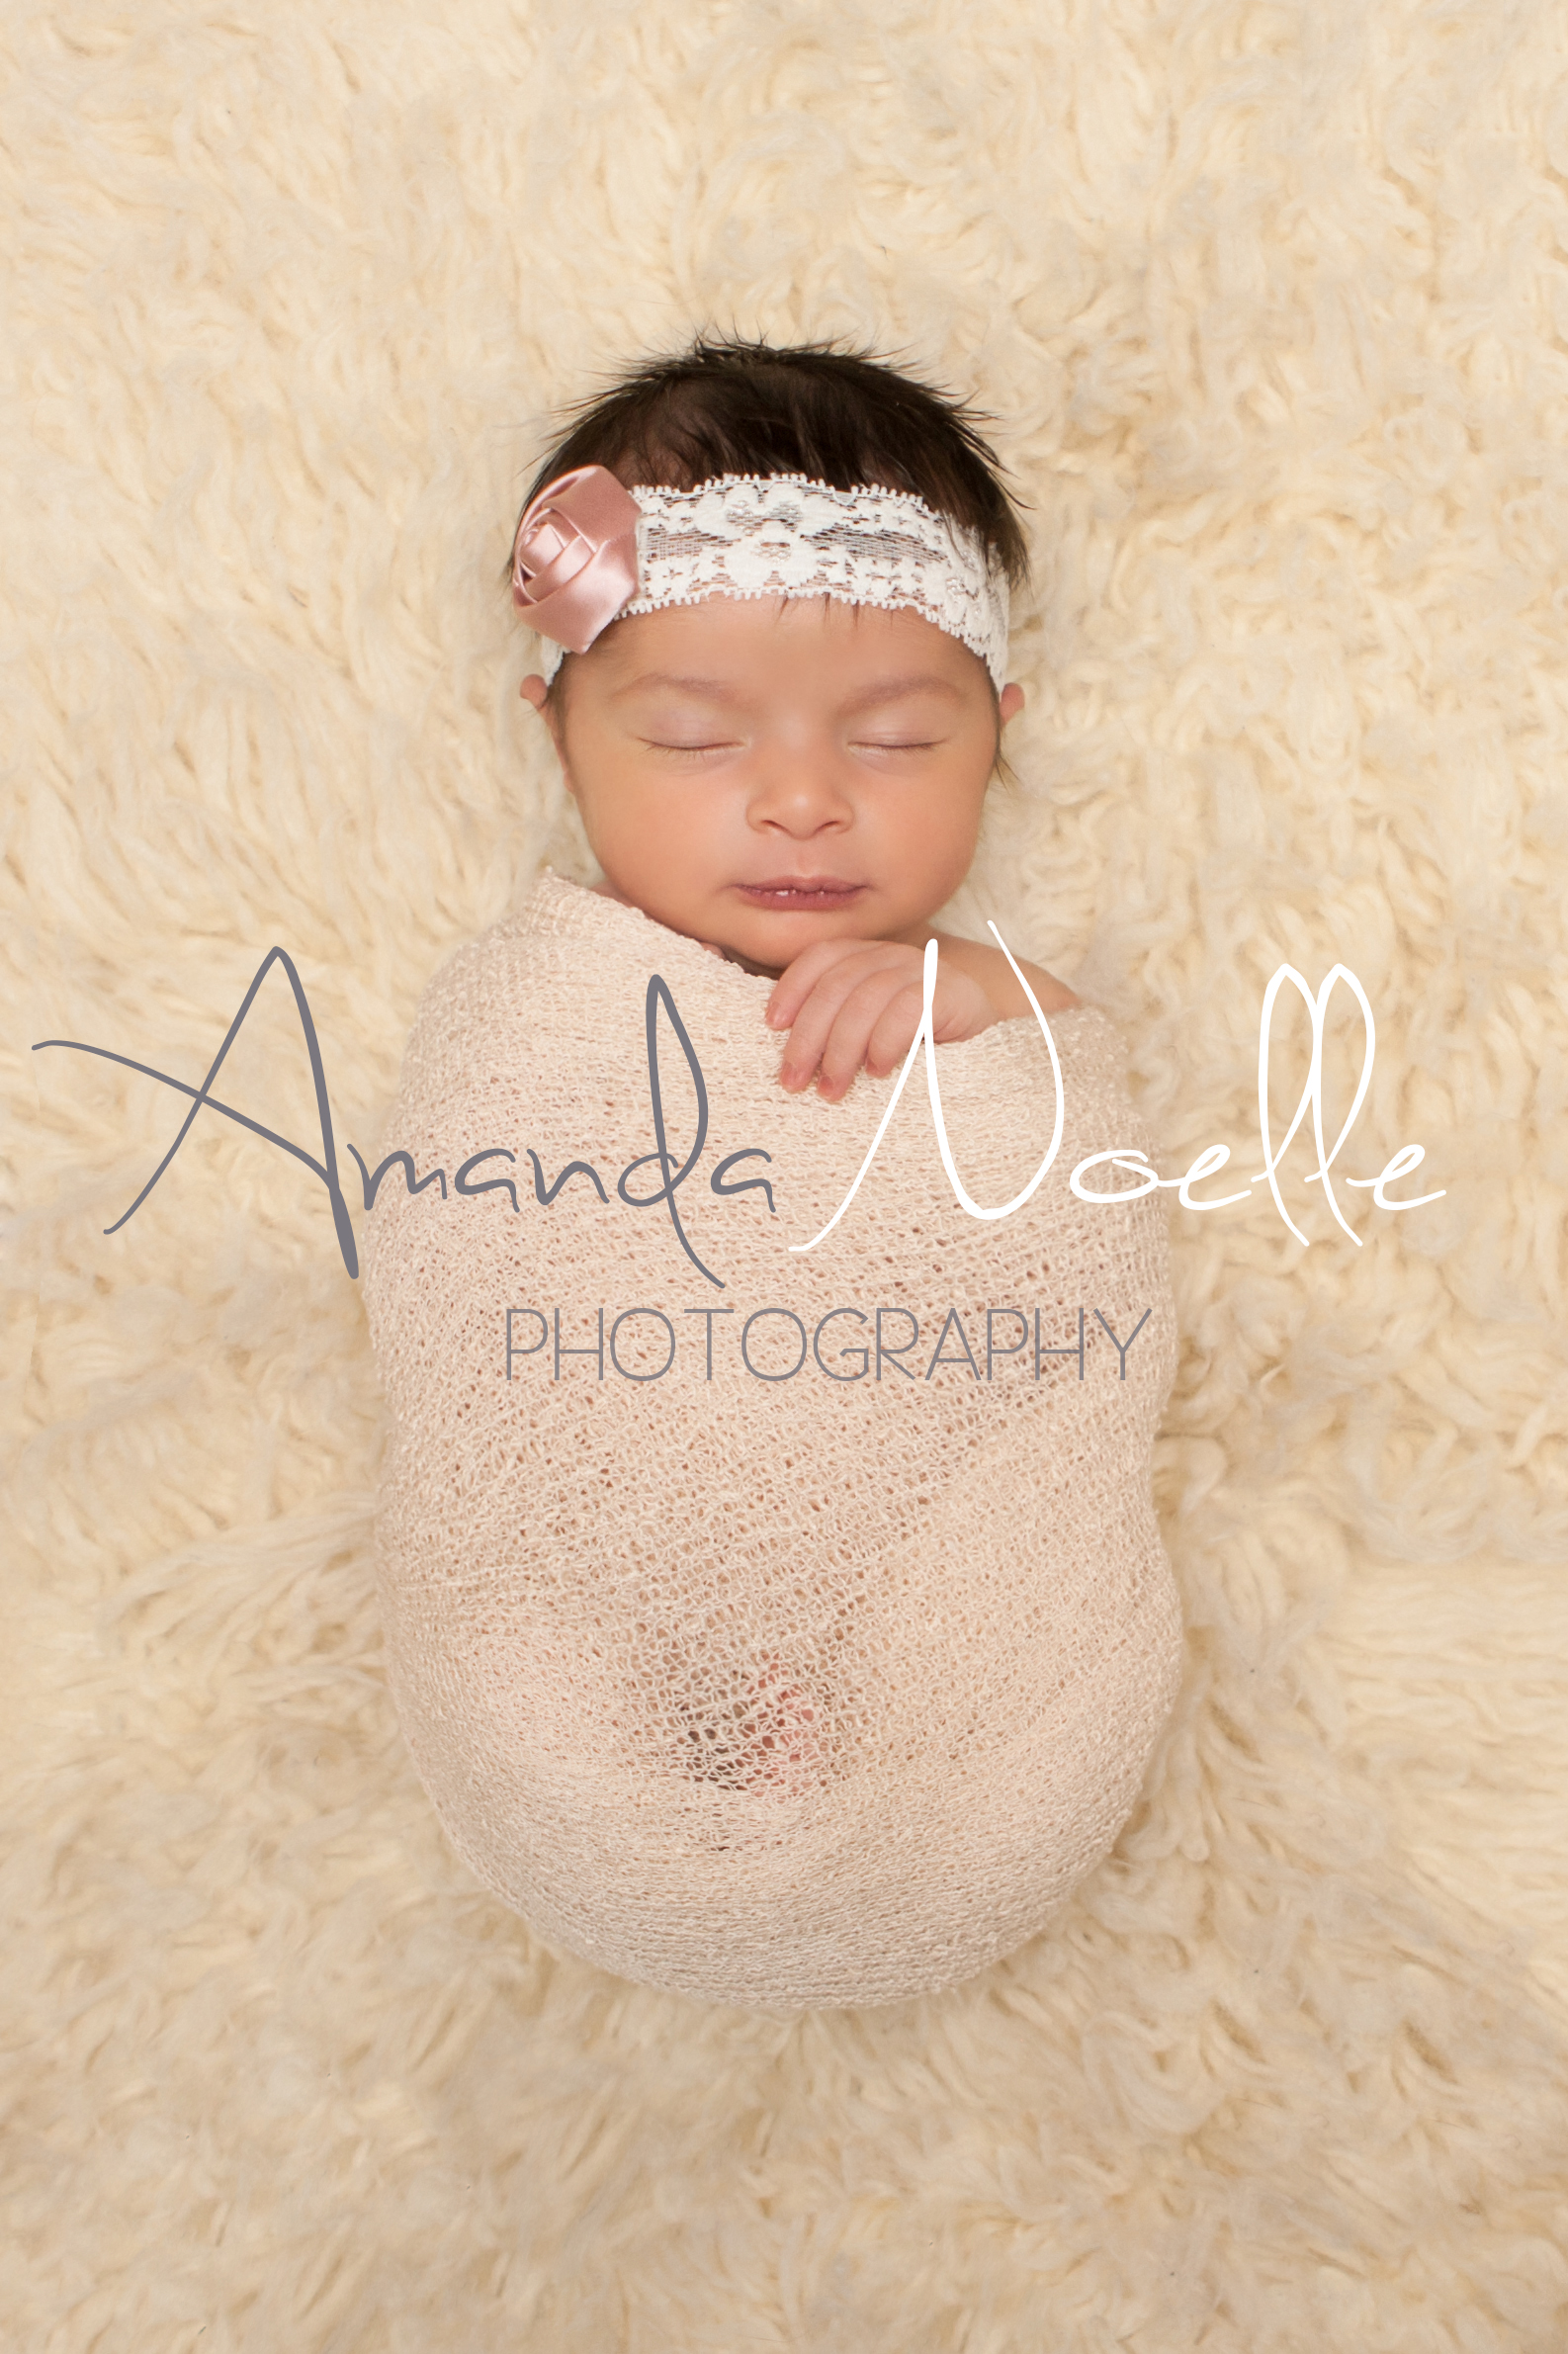 Newborn baby girl sleeping with pink and white lace rose flower  headband wrapped in stretch knit cream wrap on cream creme flokati rug, Westchester, County New York Newborn Photographer, Amanda Noelle Photography.